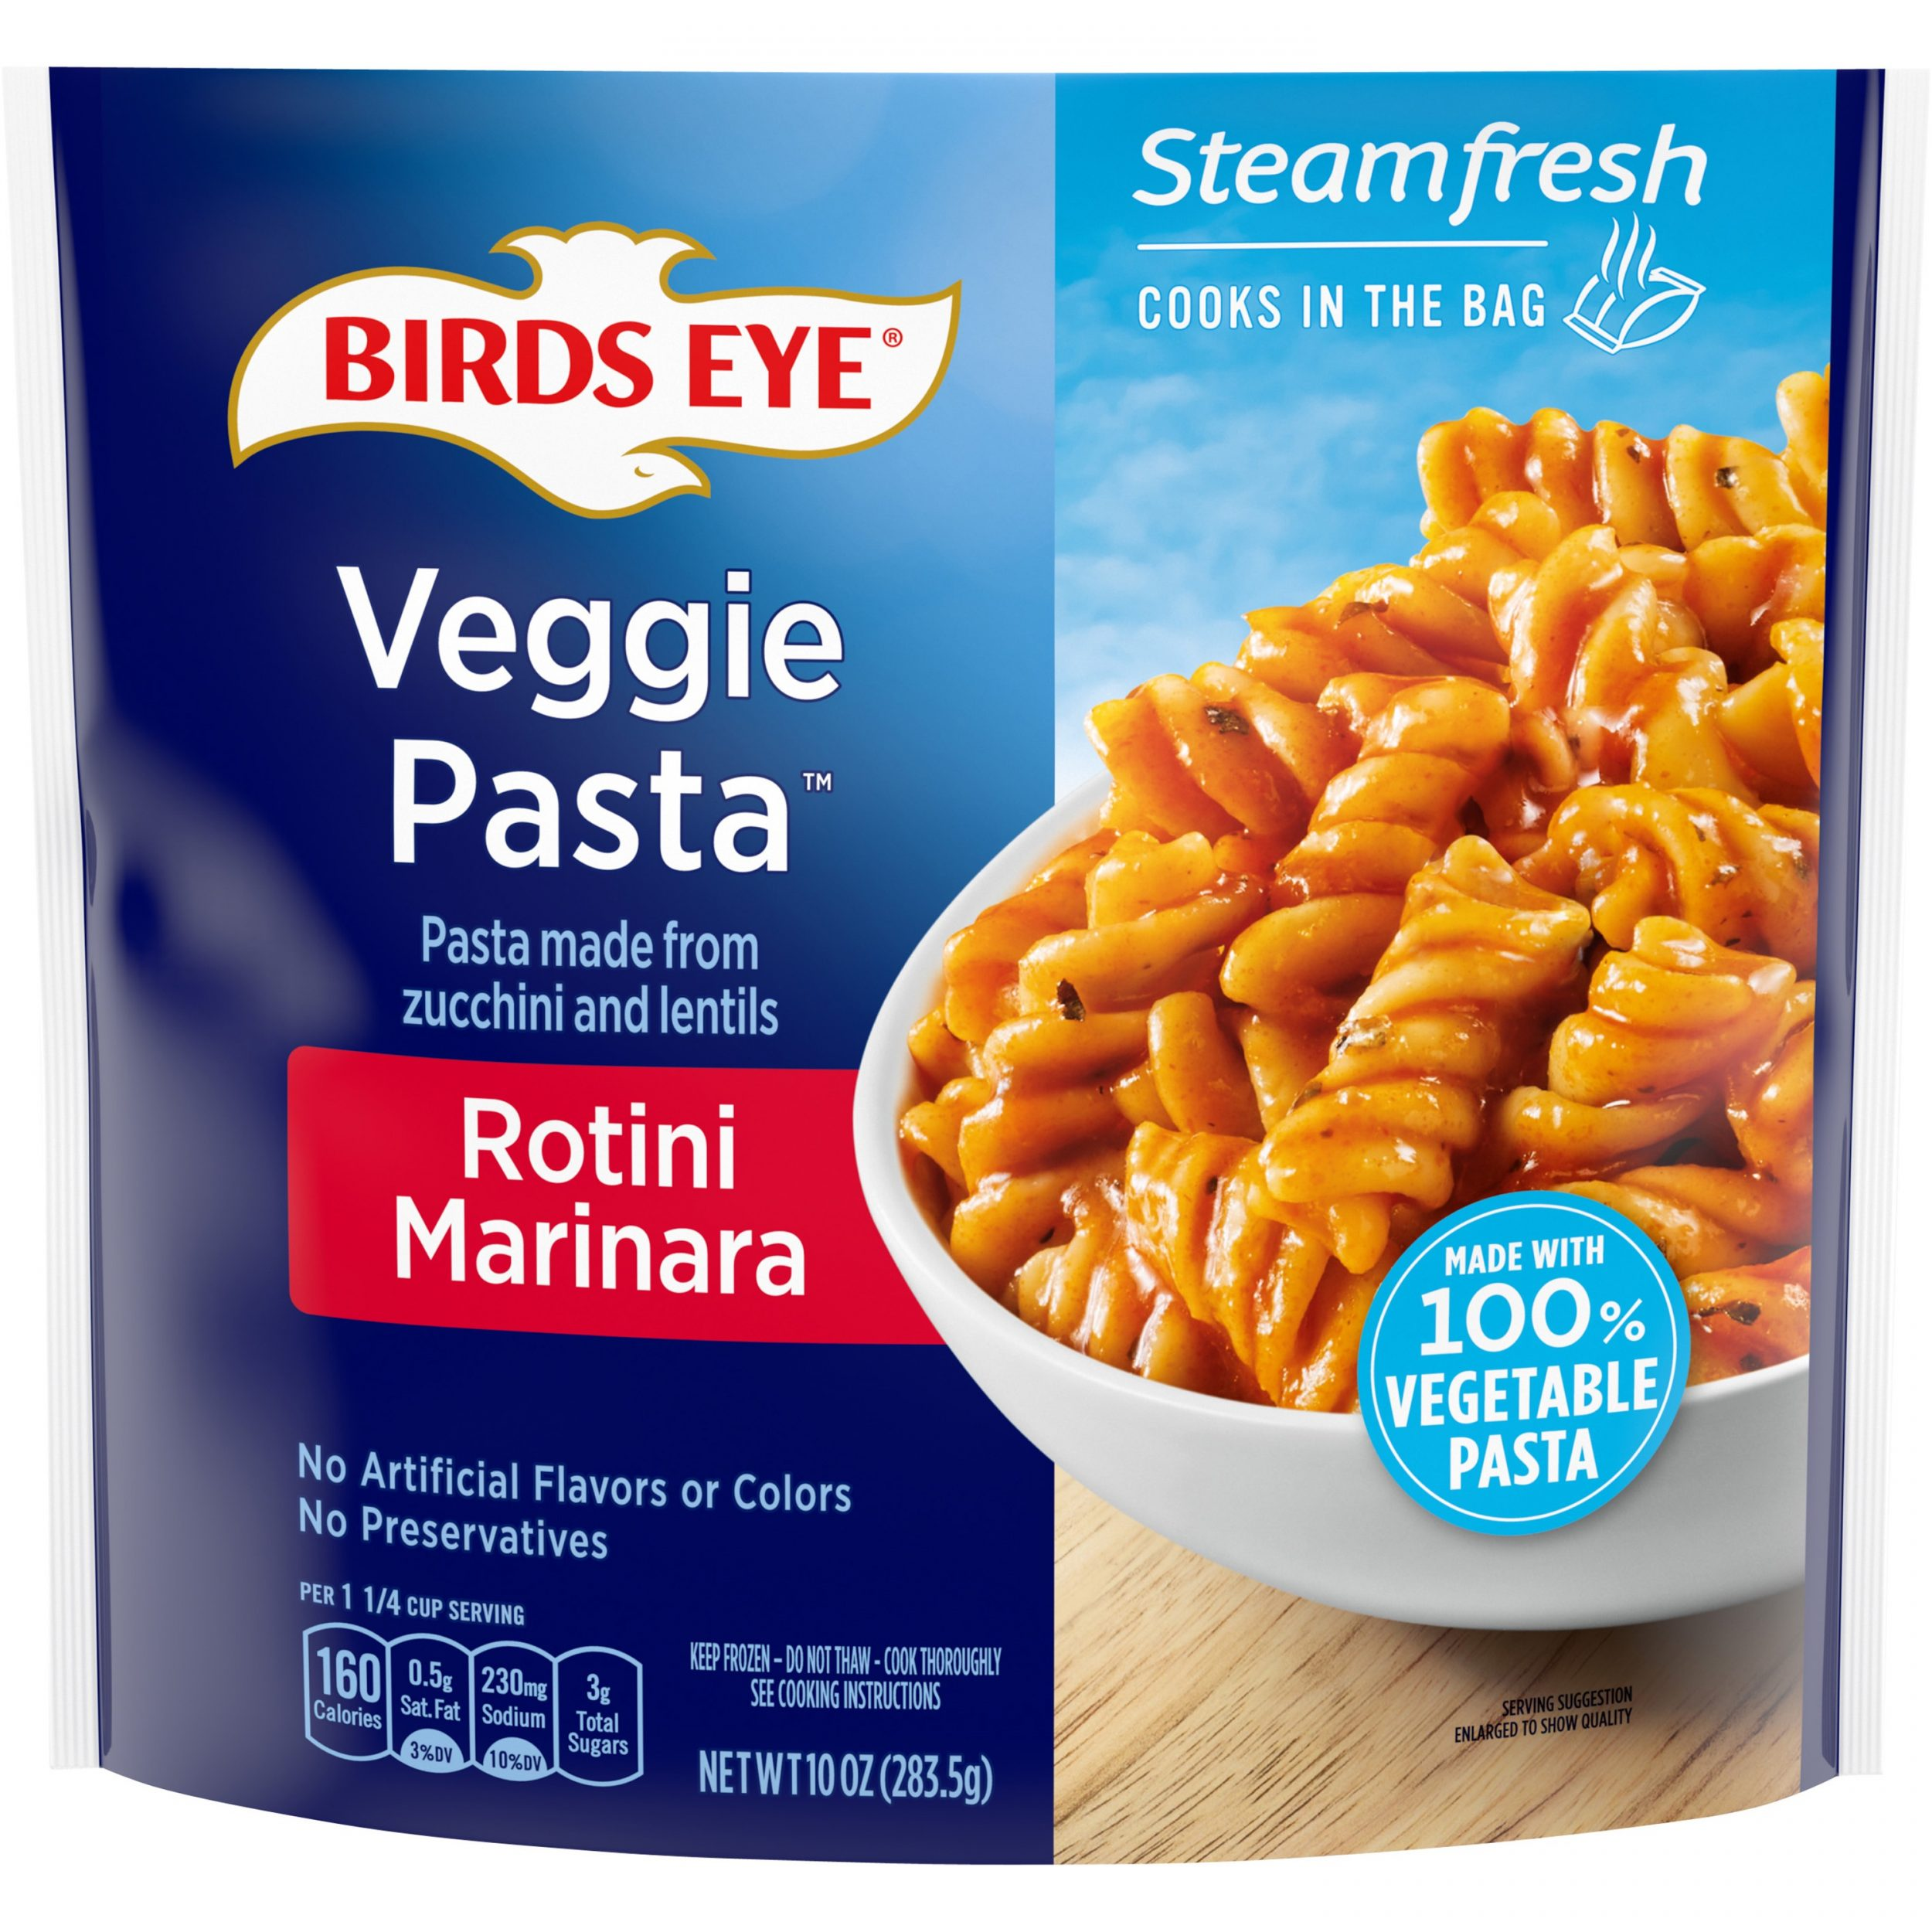 Birds Eye Steamfresh Veggie Made™ Rotini Marinara